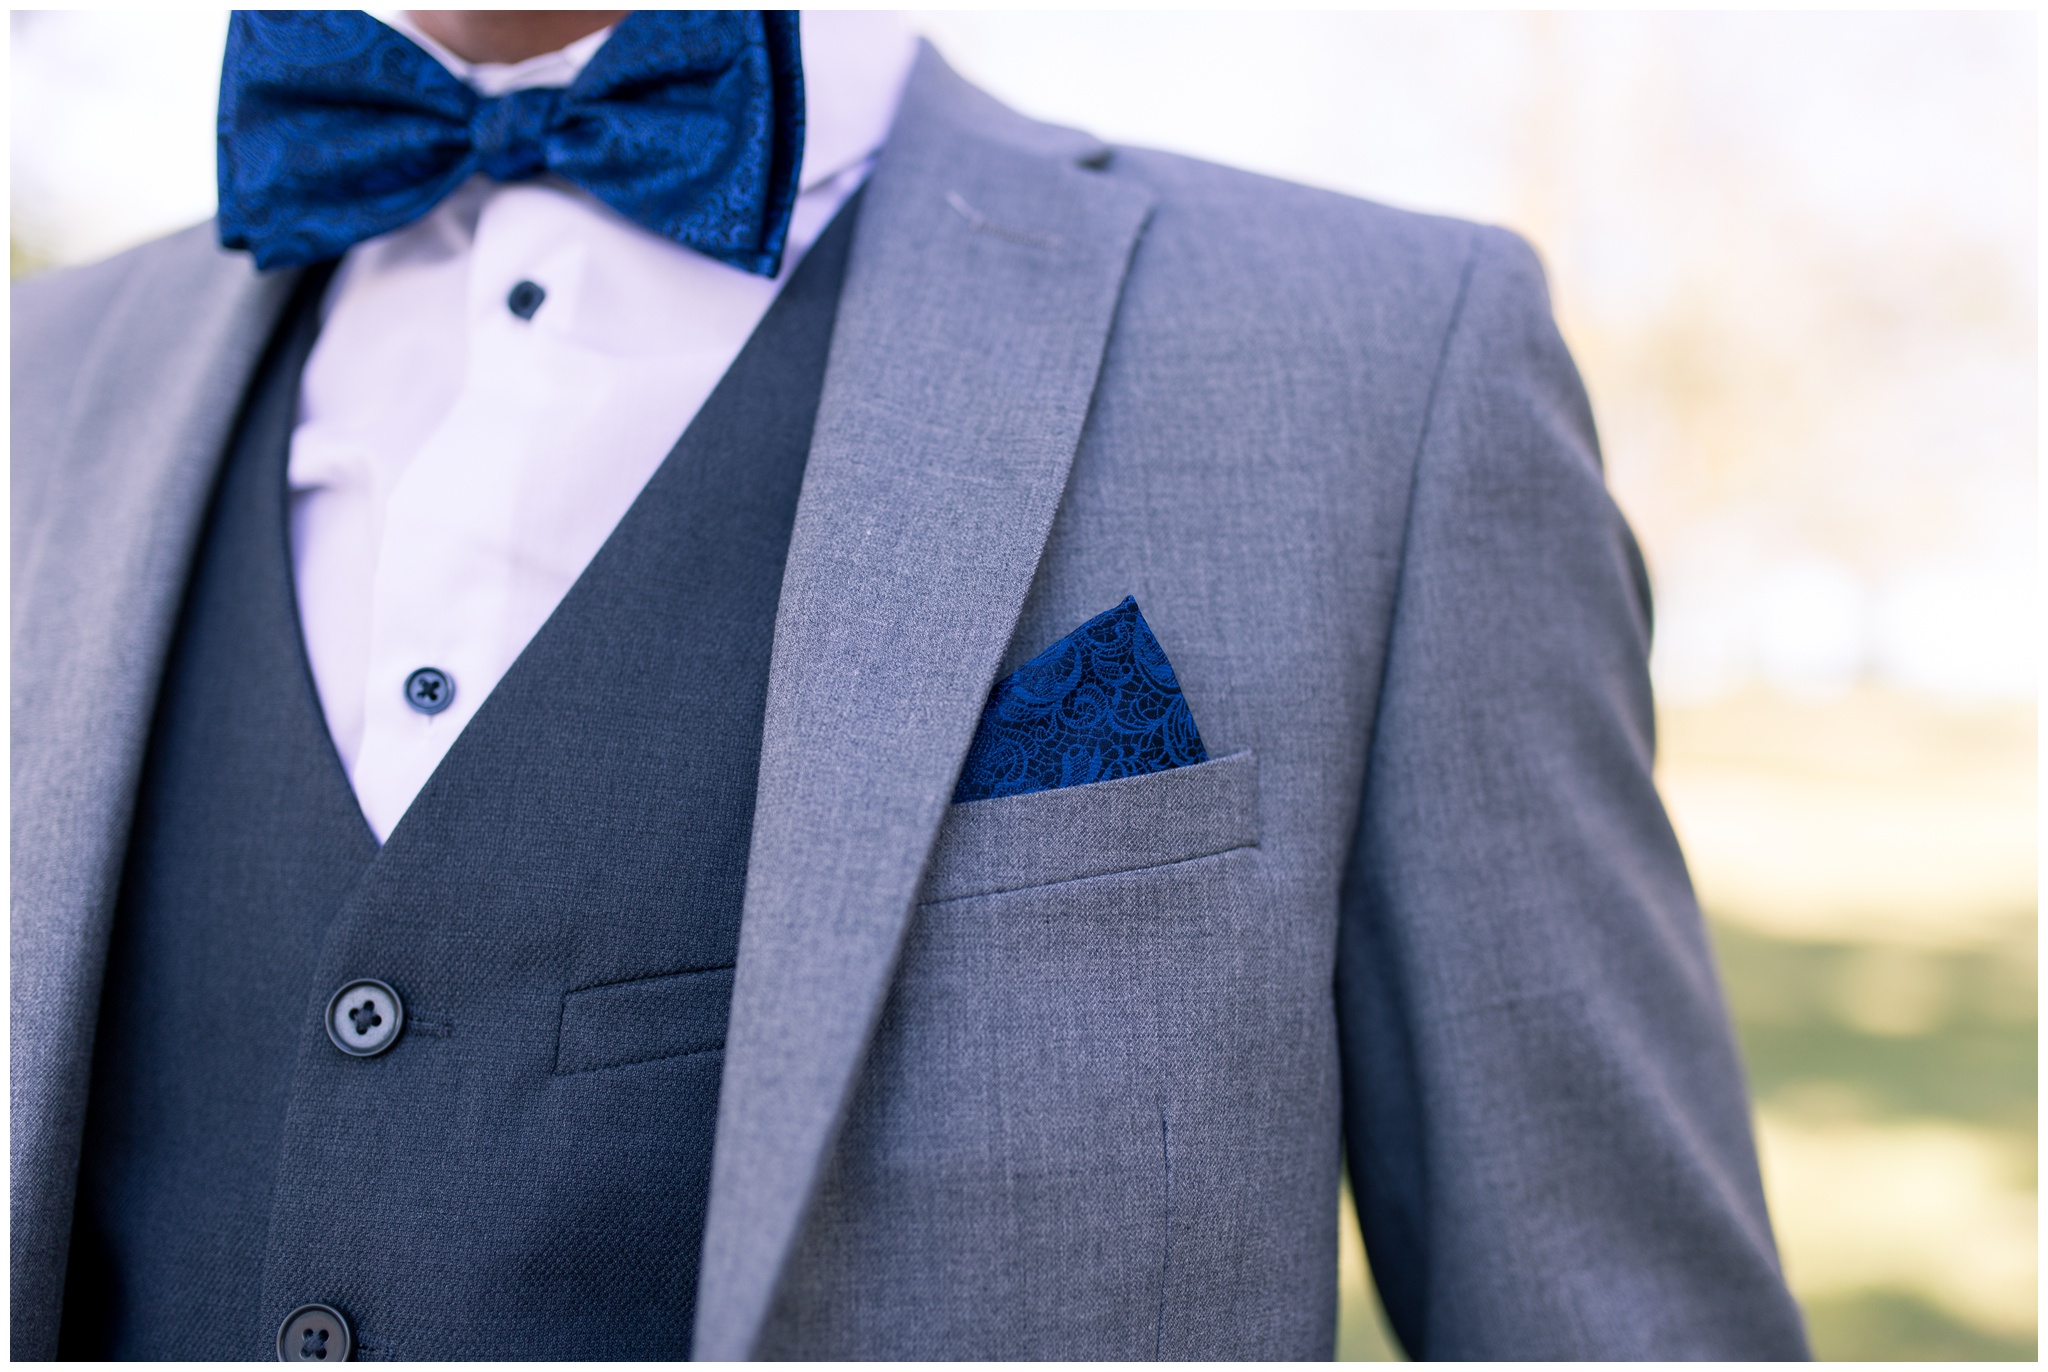 groom details of tie and pocket square